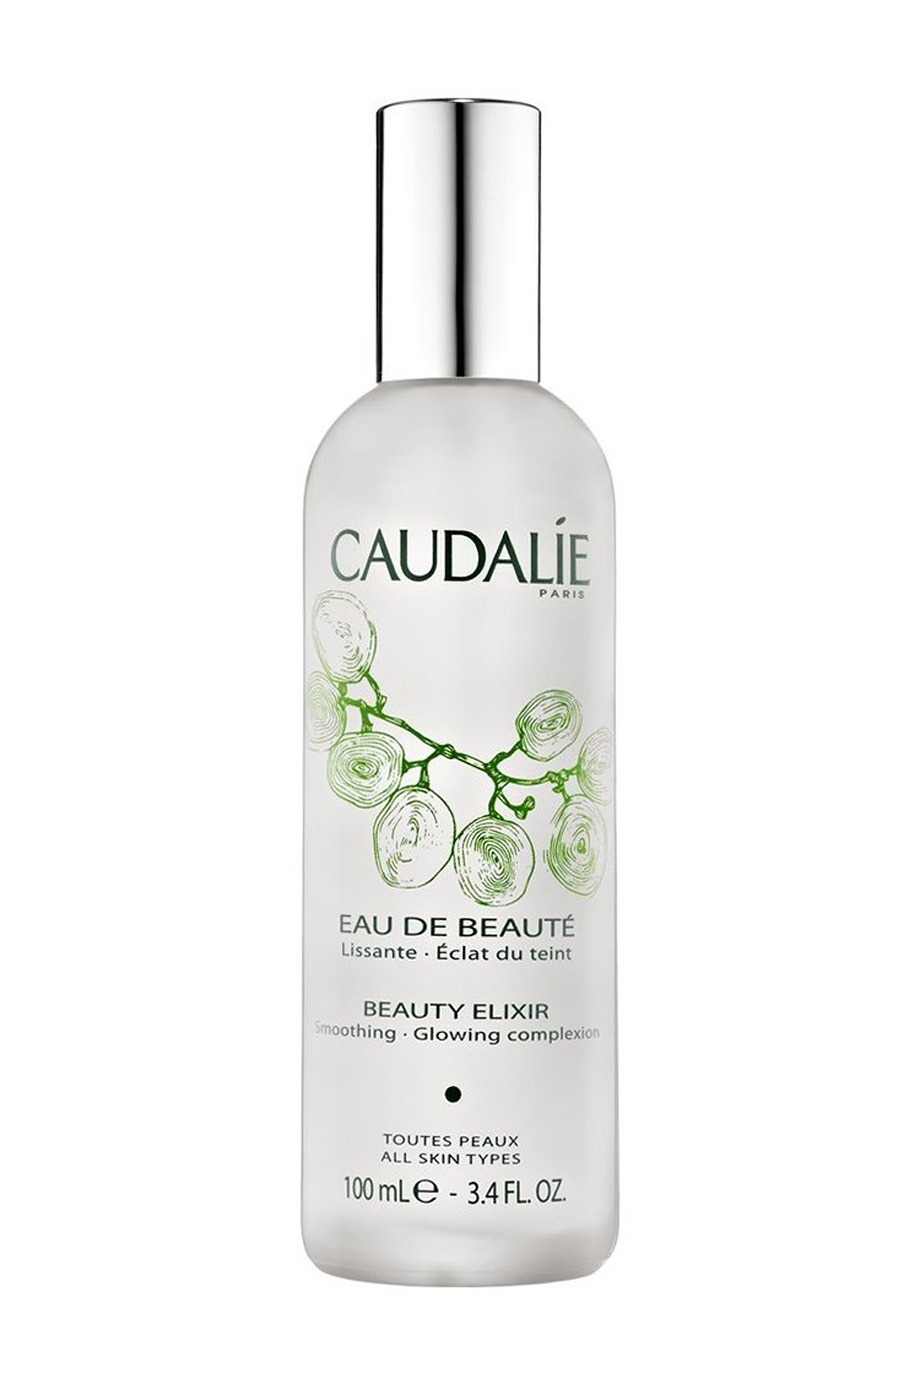 Вода для красоты лица Beauty Elixir 100ml Caudalie (фото)